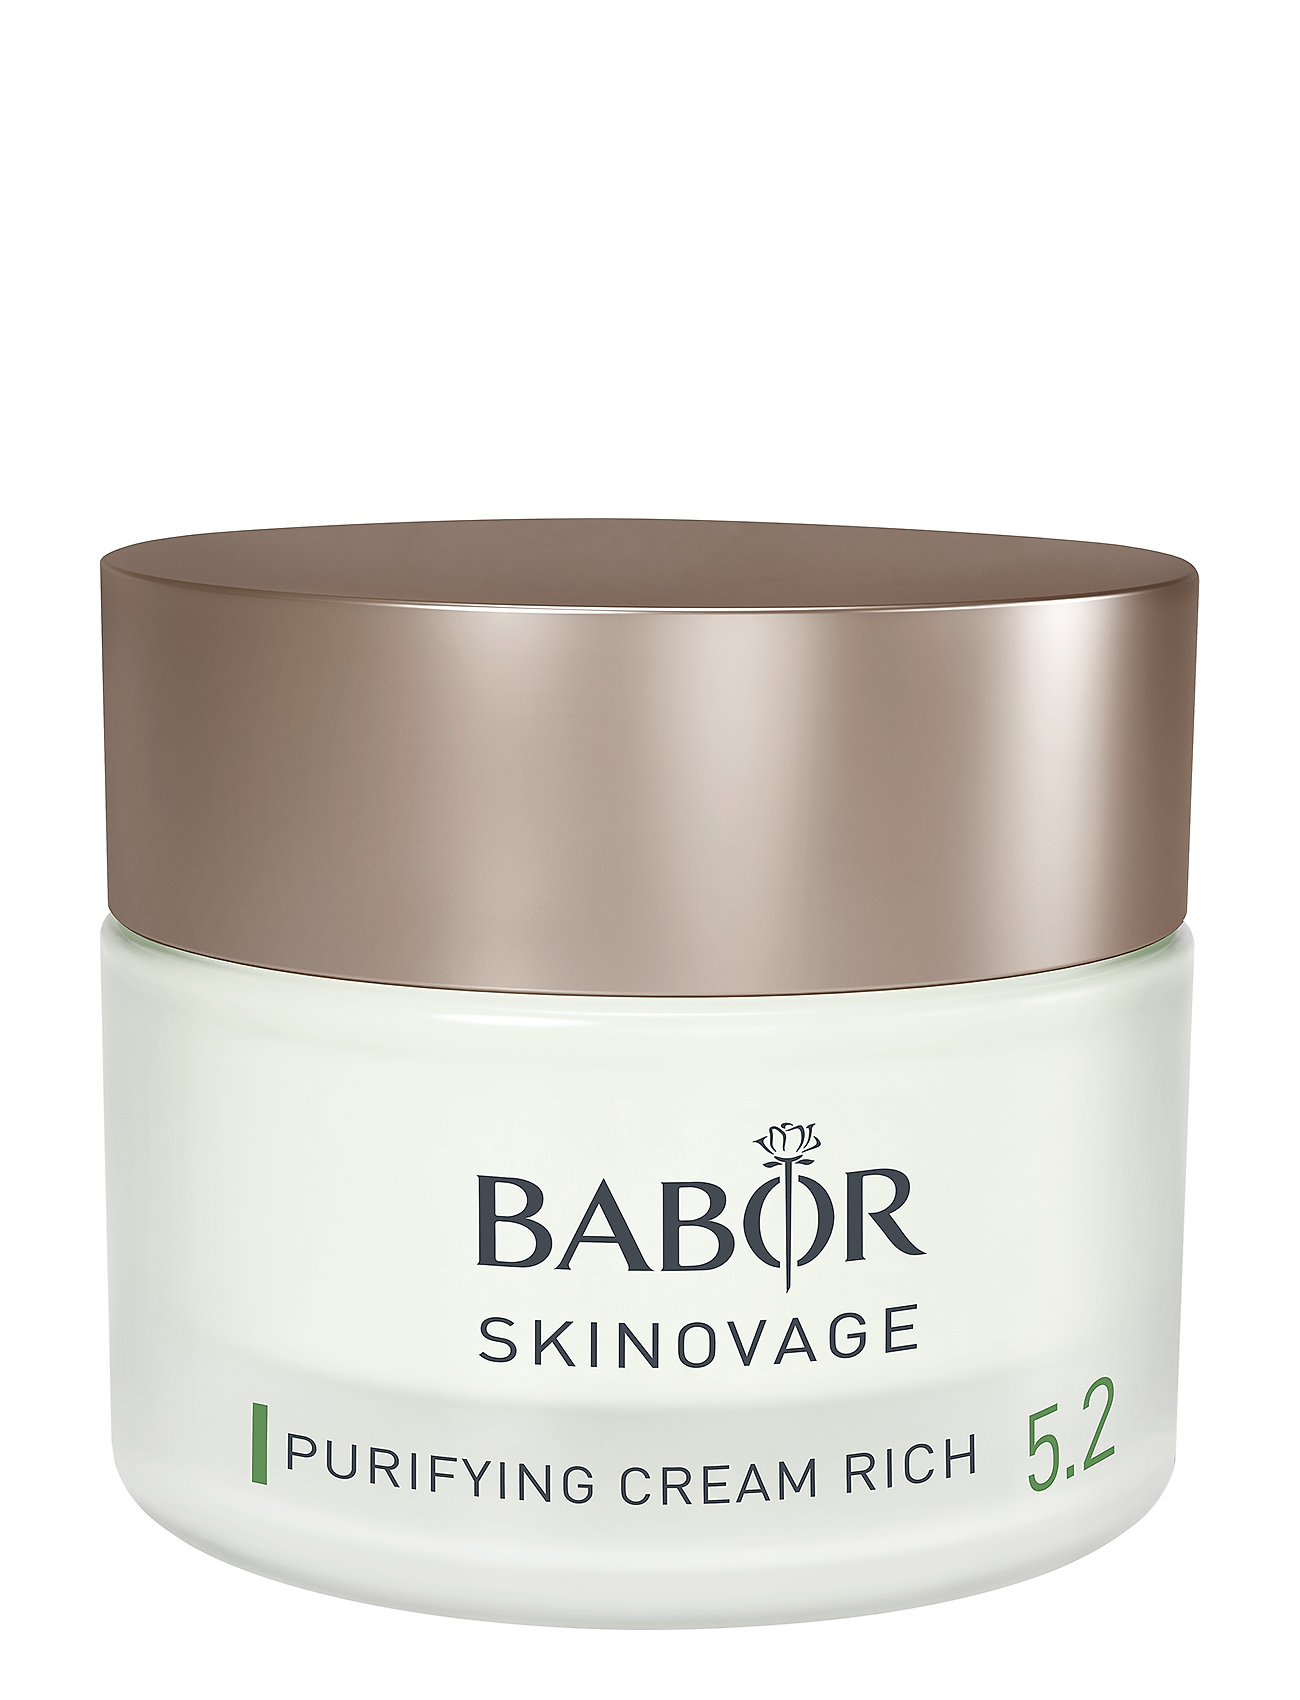 Image of Purifying Cream Rich Beauty WOMEN Skin Care Face Day Creams Nude Babor (3276249189)